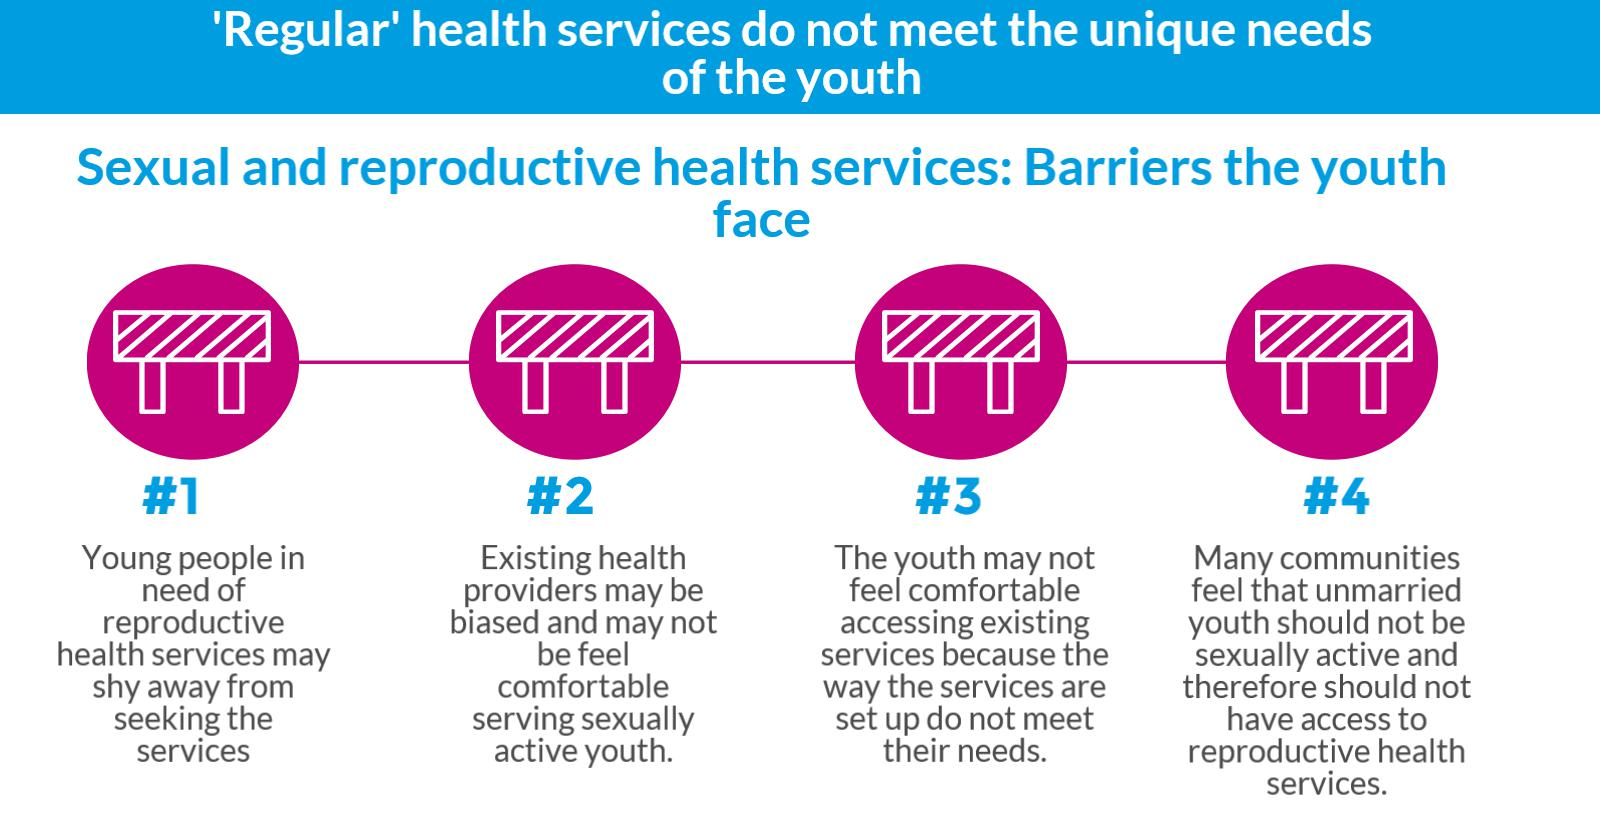 'Regular' health services do not meet the unique needs of the youth